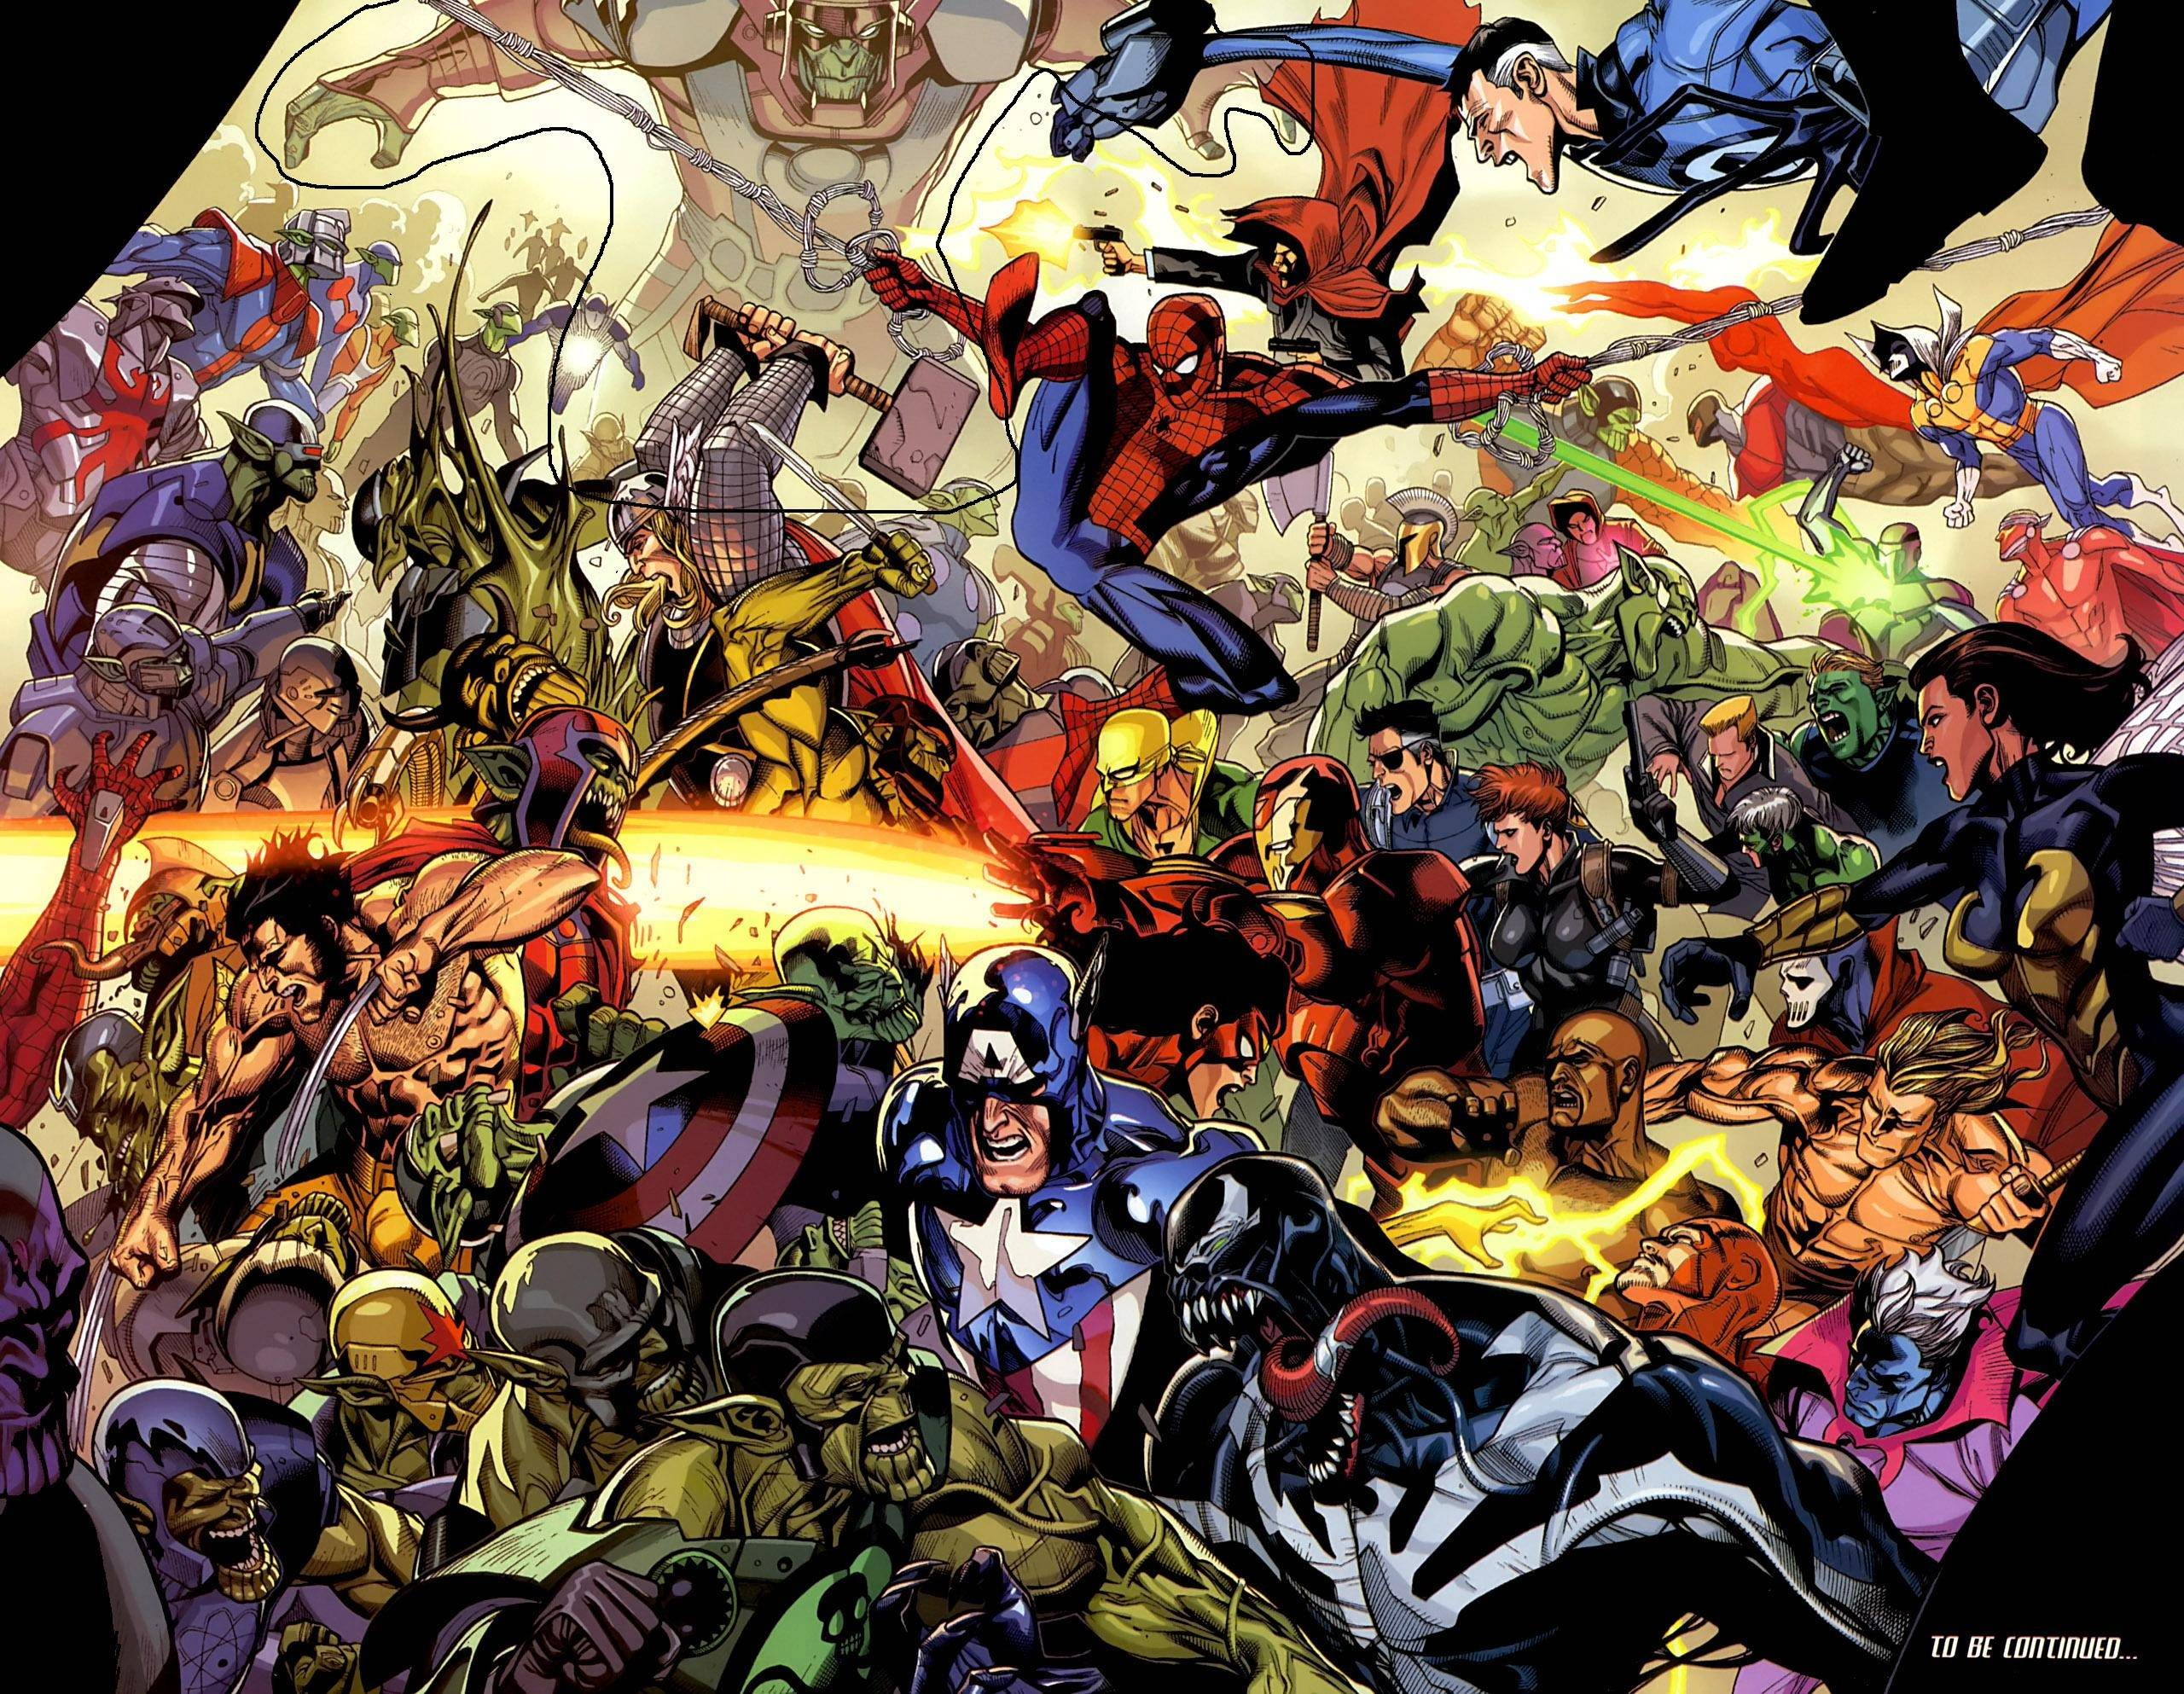 Marvel Wallpaper 22 35843 Images HD Wallpapers| Wallpapers ...